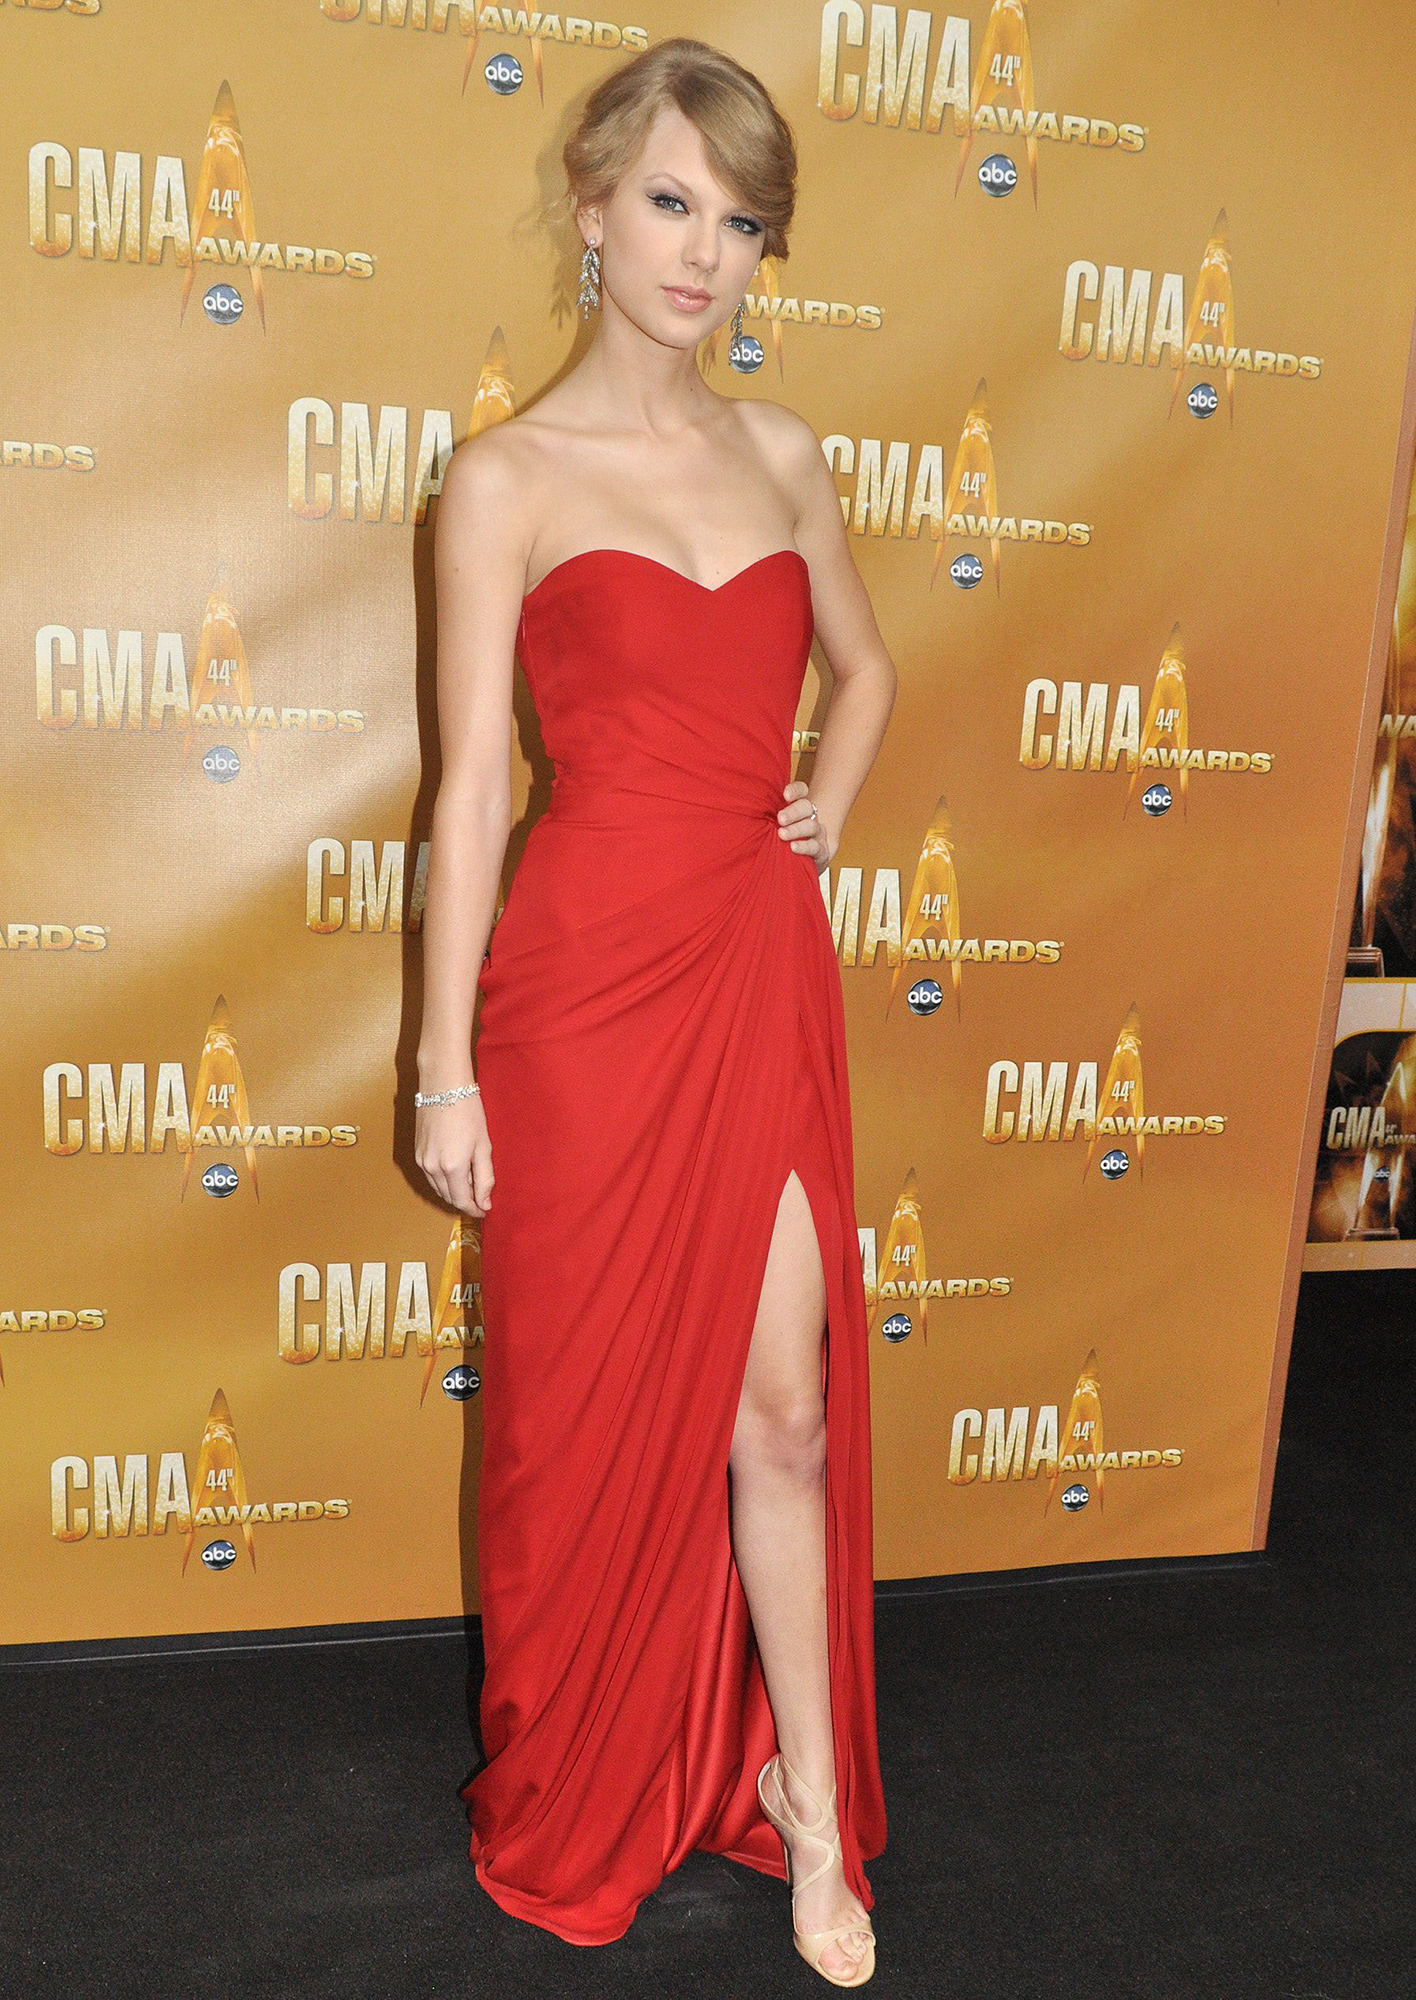 44th Annual CMA Awards: Country's Biggest Night - Nashville